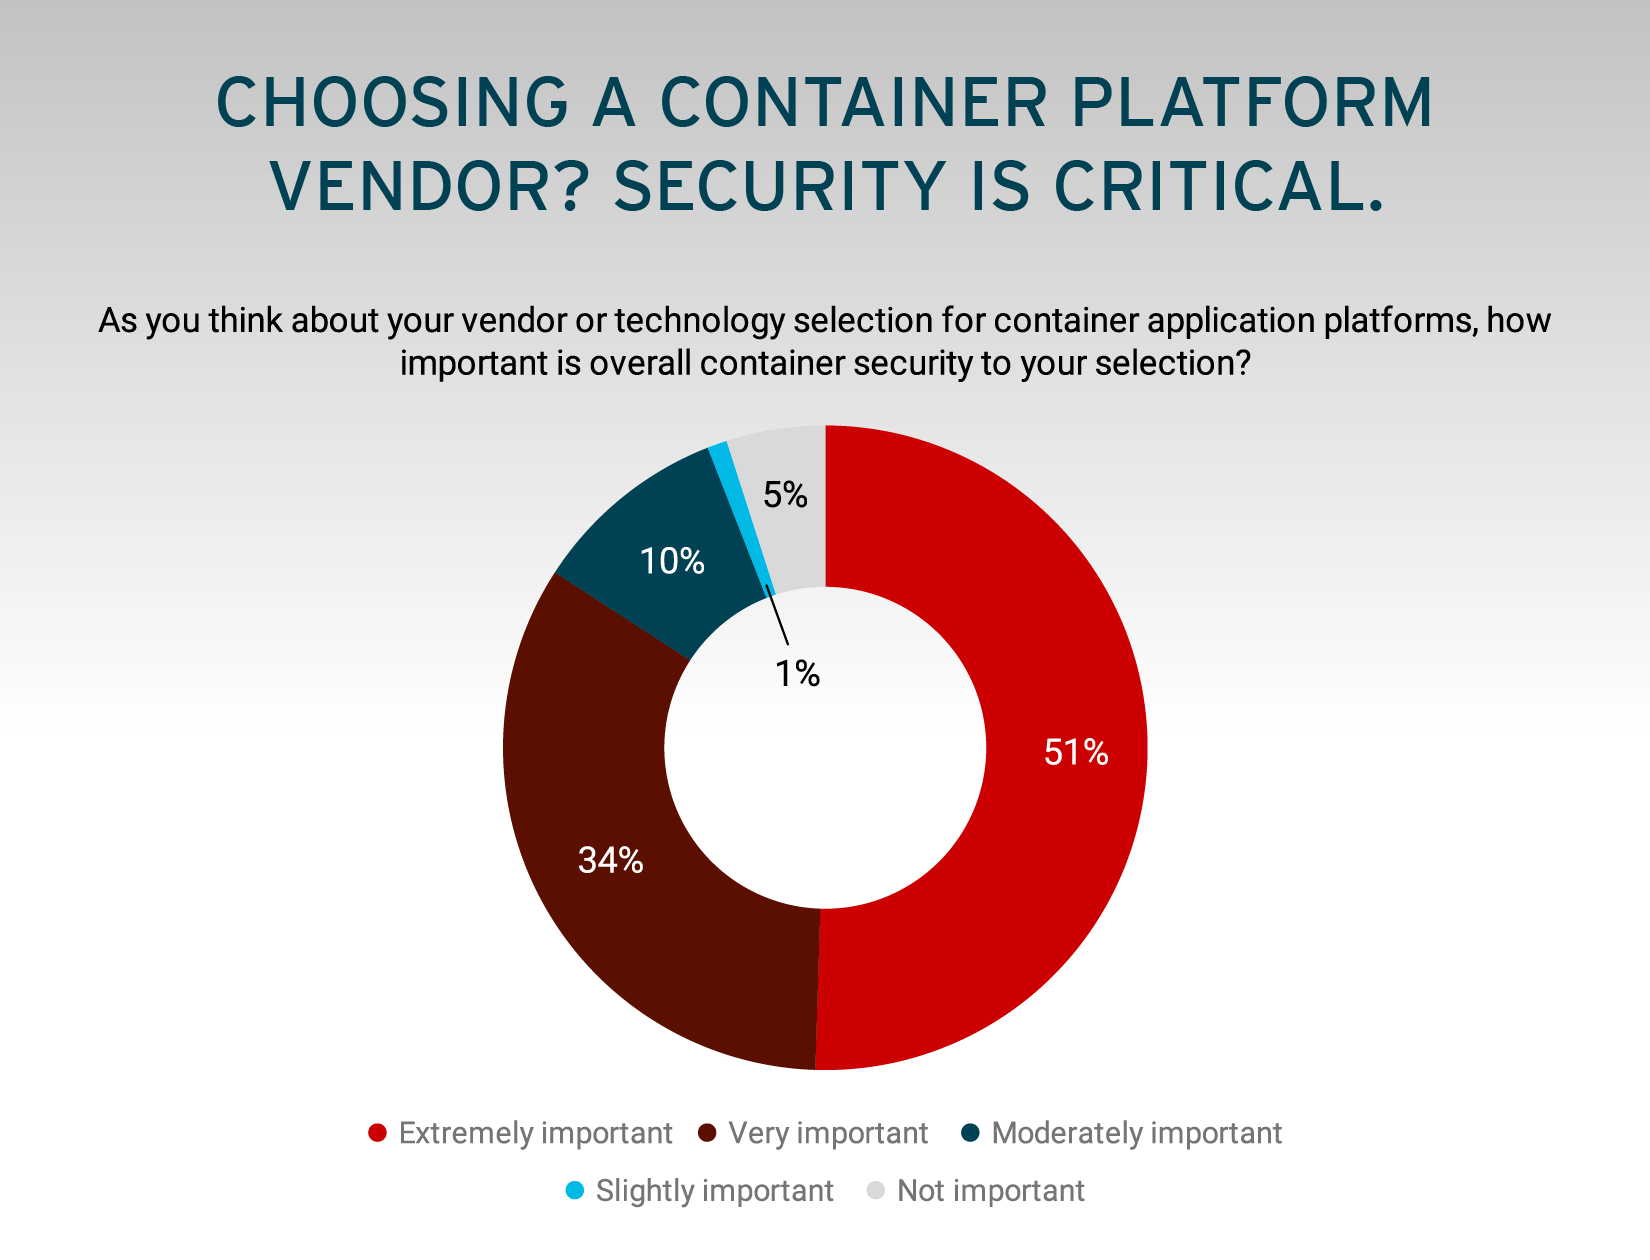 Choosing a Container Platform Vendor? Security Is Critical